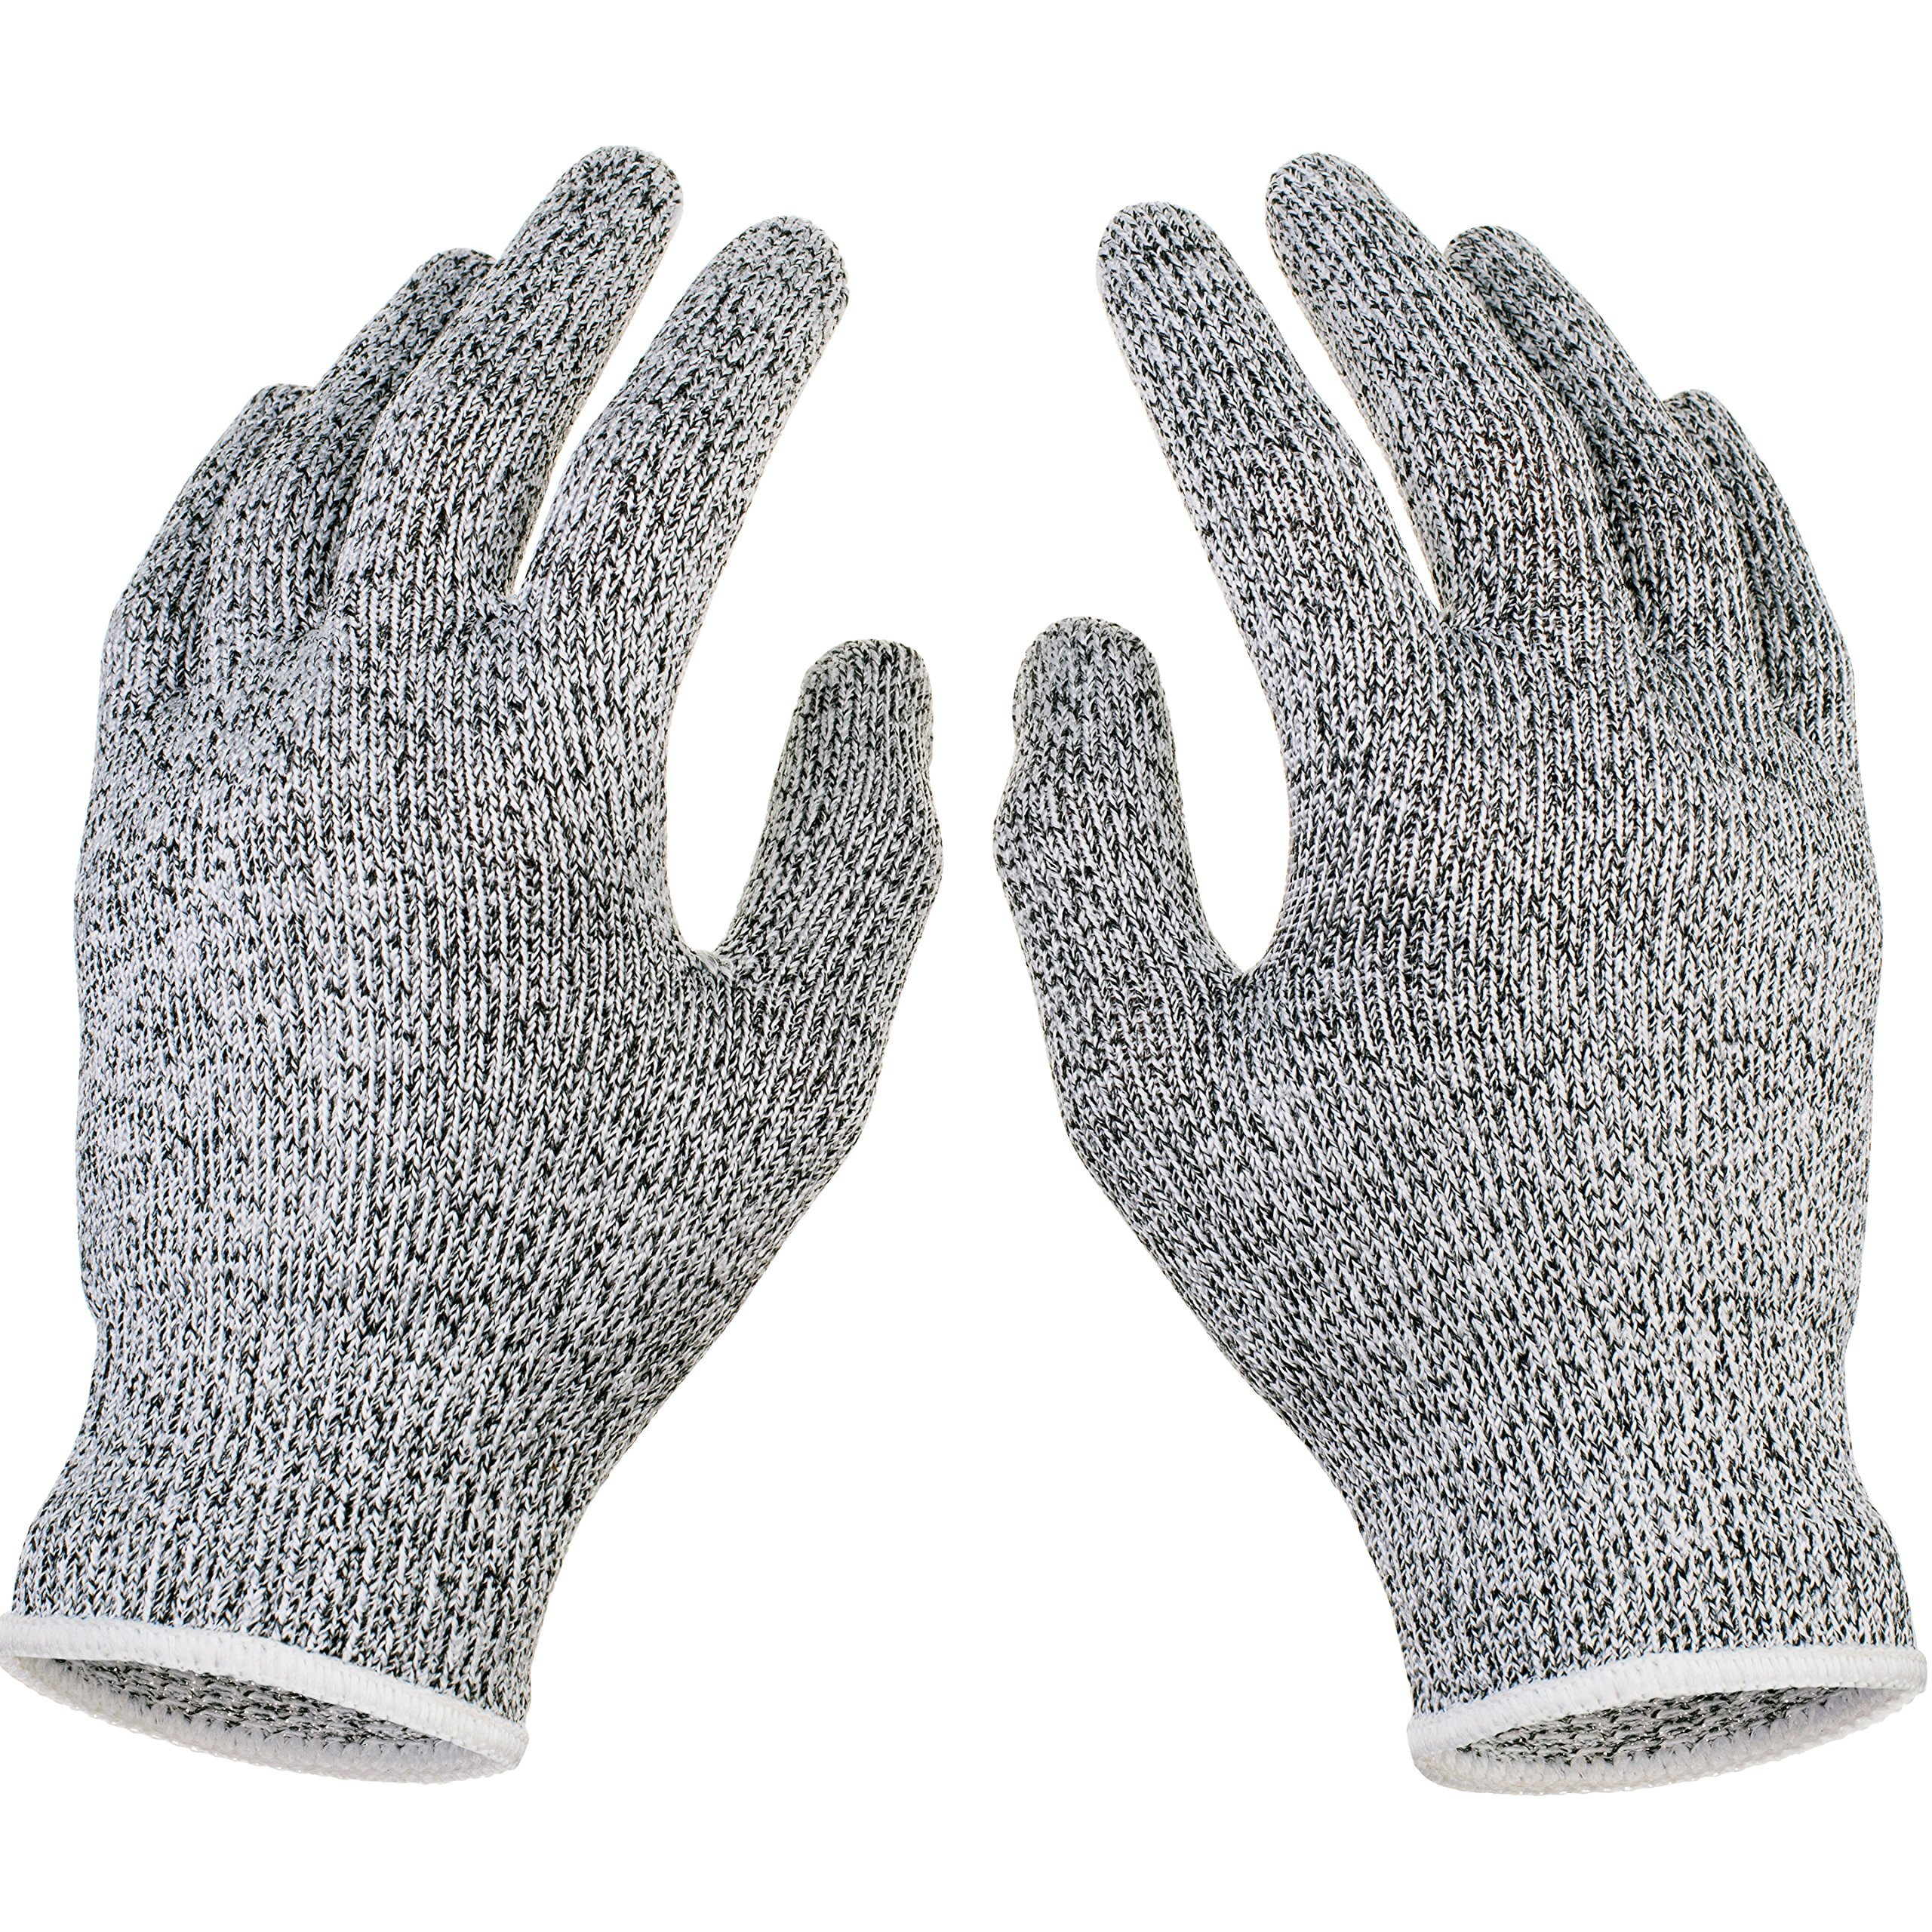 NoCry Cut Resistant Gloves with Grip Dots - High Performance Level 5 Protection, Food Grade. Size Large, Free Ebook Included! by NoCry (Image #9)